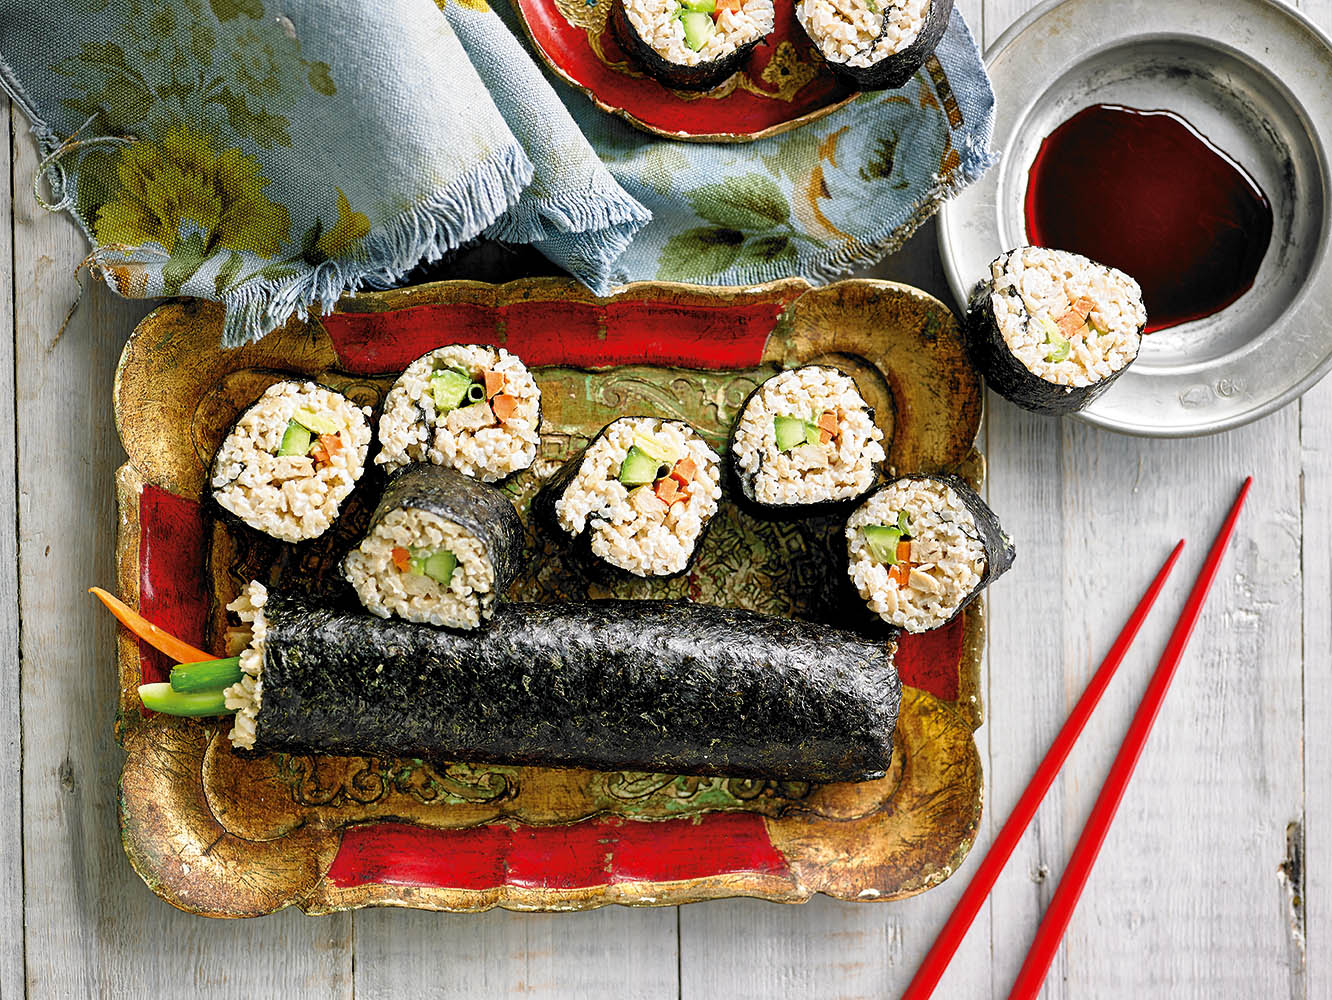 brown-rice-nori-hr-copy